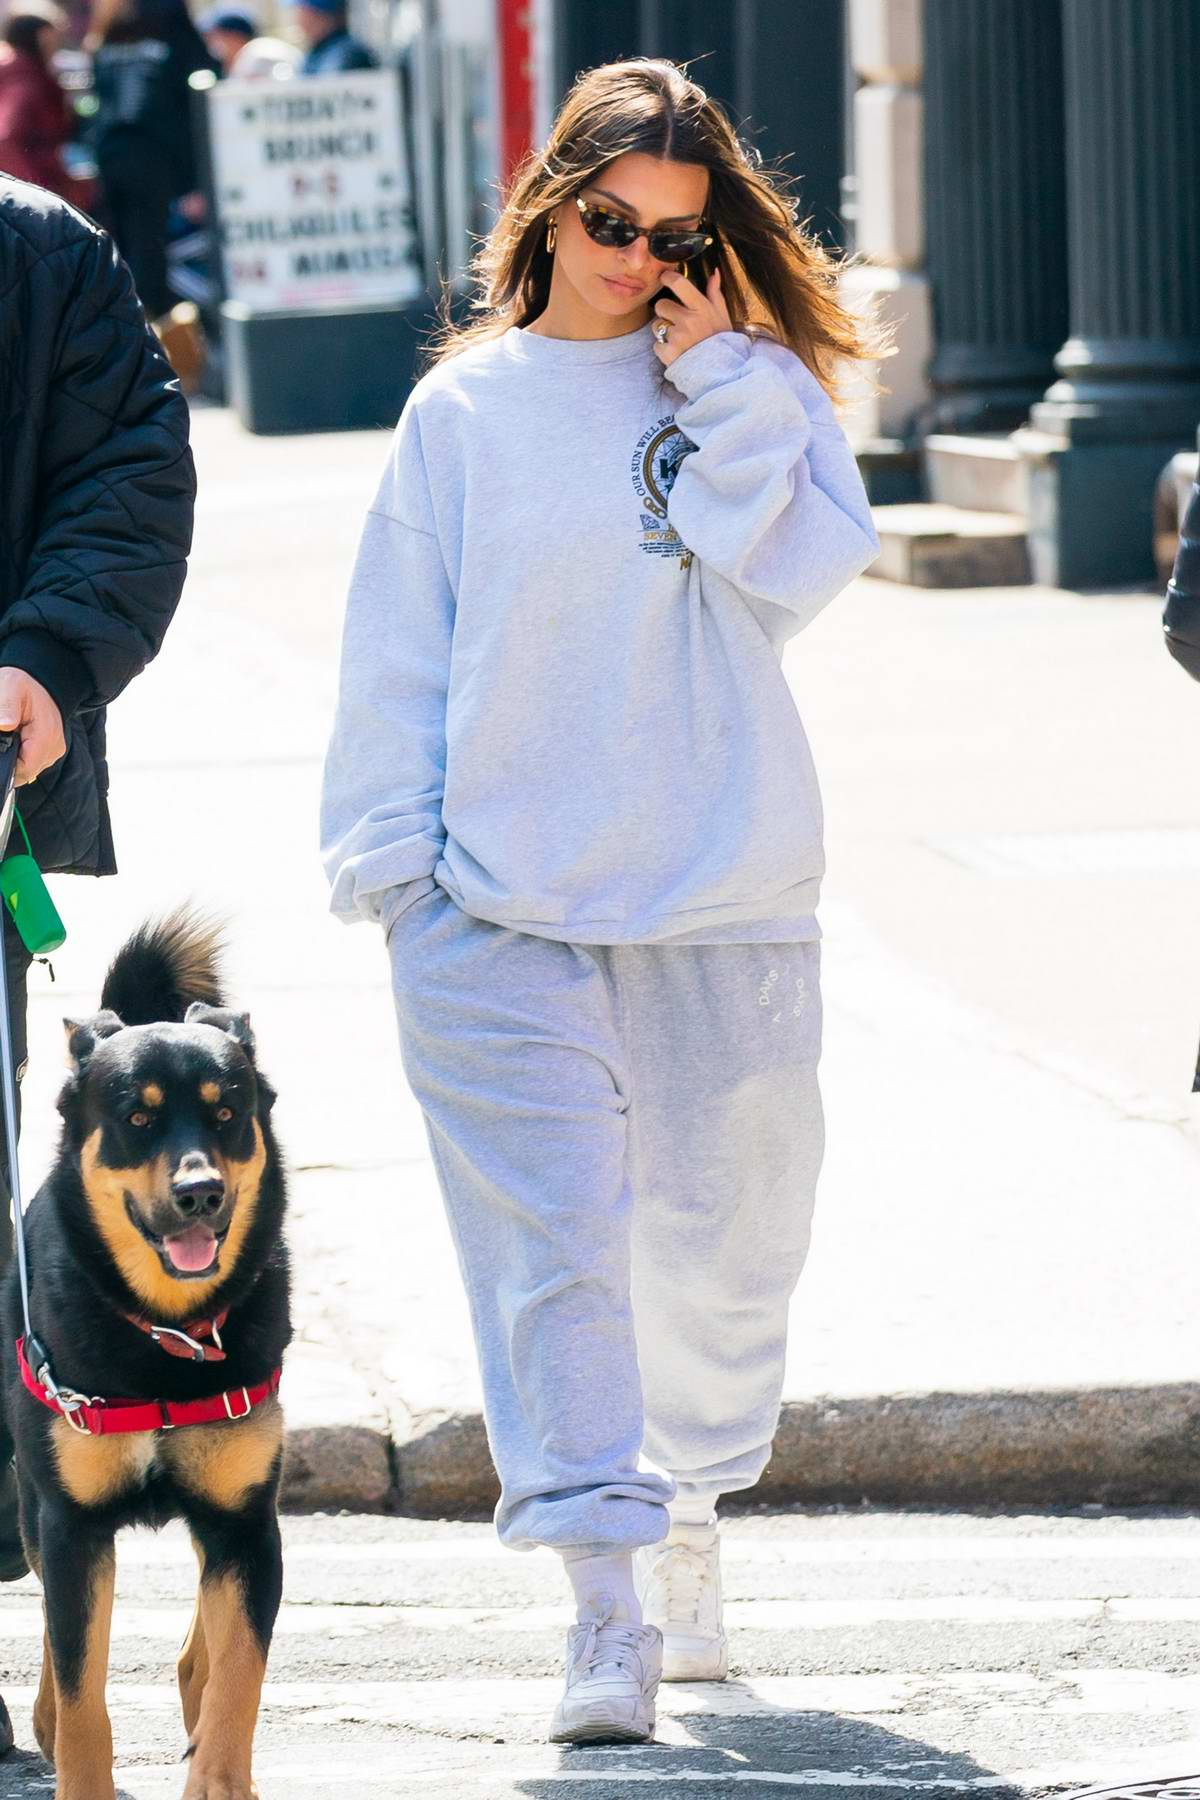 Emily Ratajkowski keeps cozy in a sweatsuit while out with Sebastian Bear-McClard and their dog in New York City